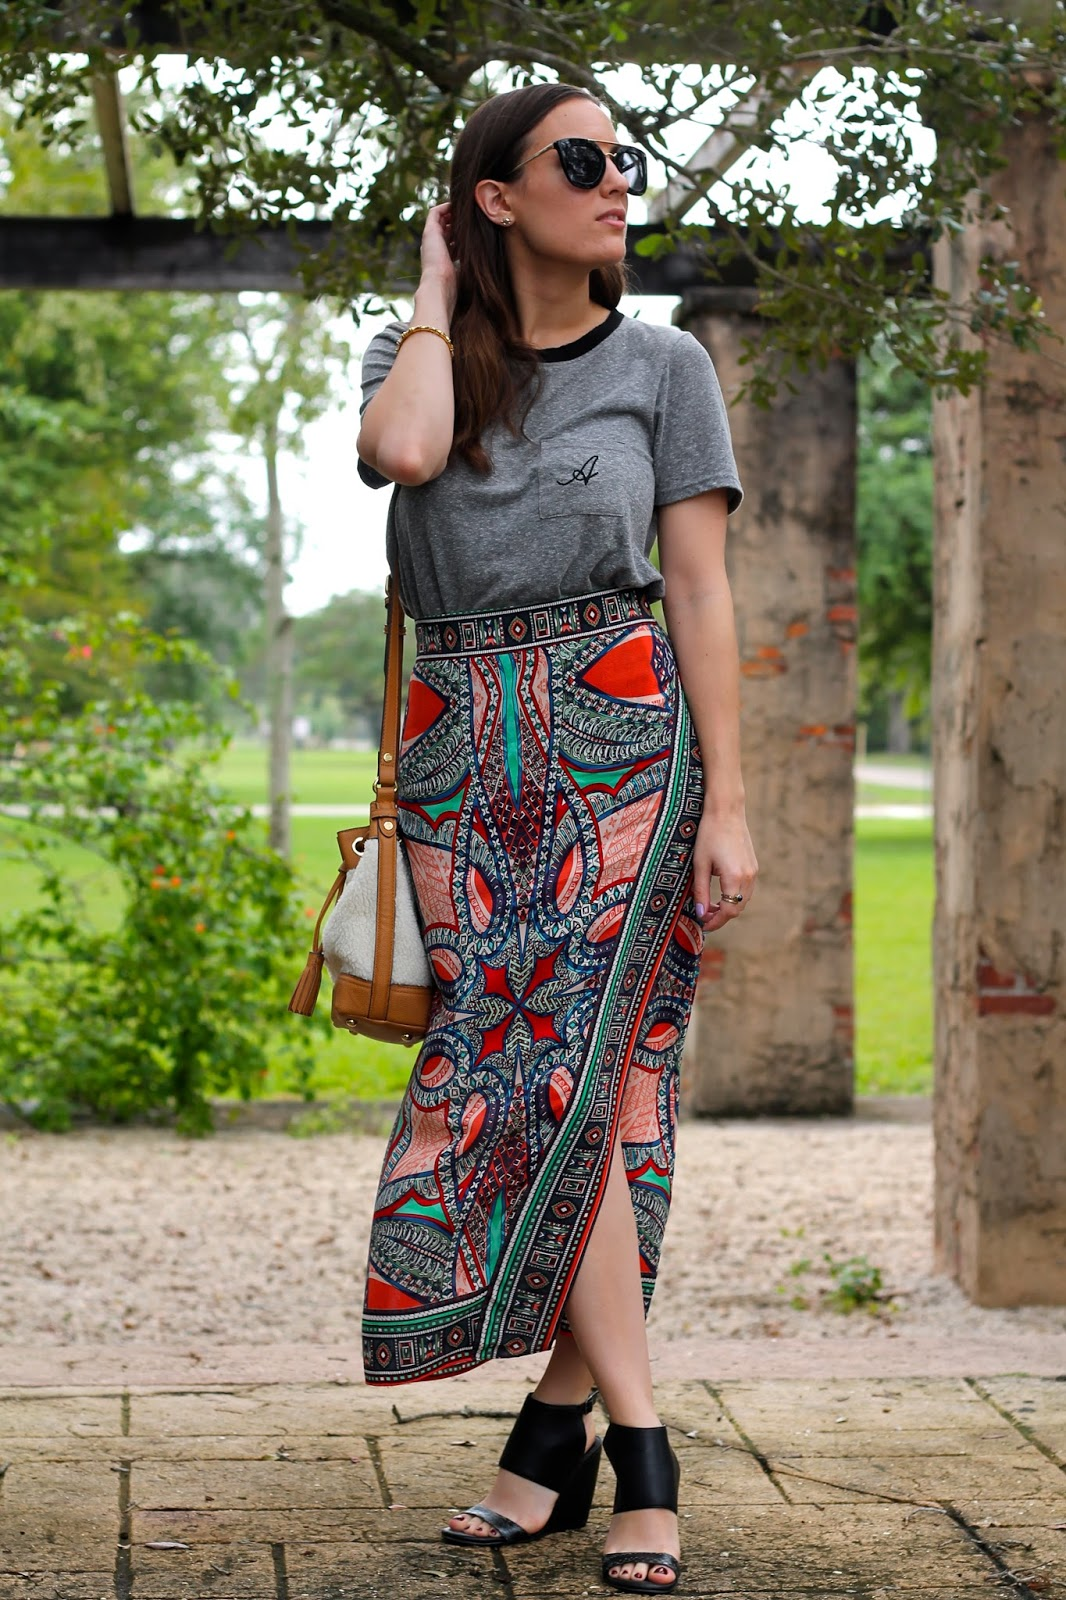 Anthropologie, urban outfitters, Adam Lippes for Target, M.I.A., NastyGal, CocoQ, Miami fashion blogger, fashion blog, style blog, fashion blogger, style blogger, outfit ideas, maxi skirt, what I wore, ootd, Miami style